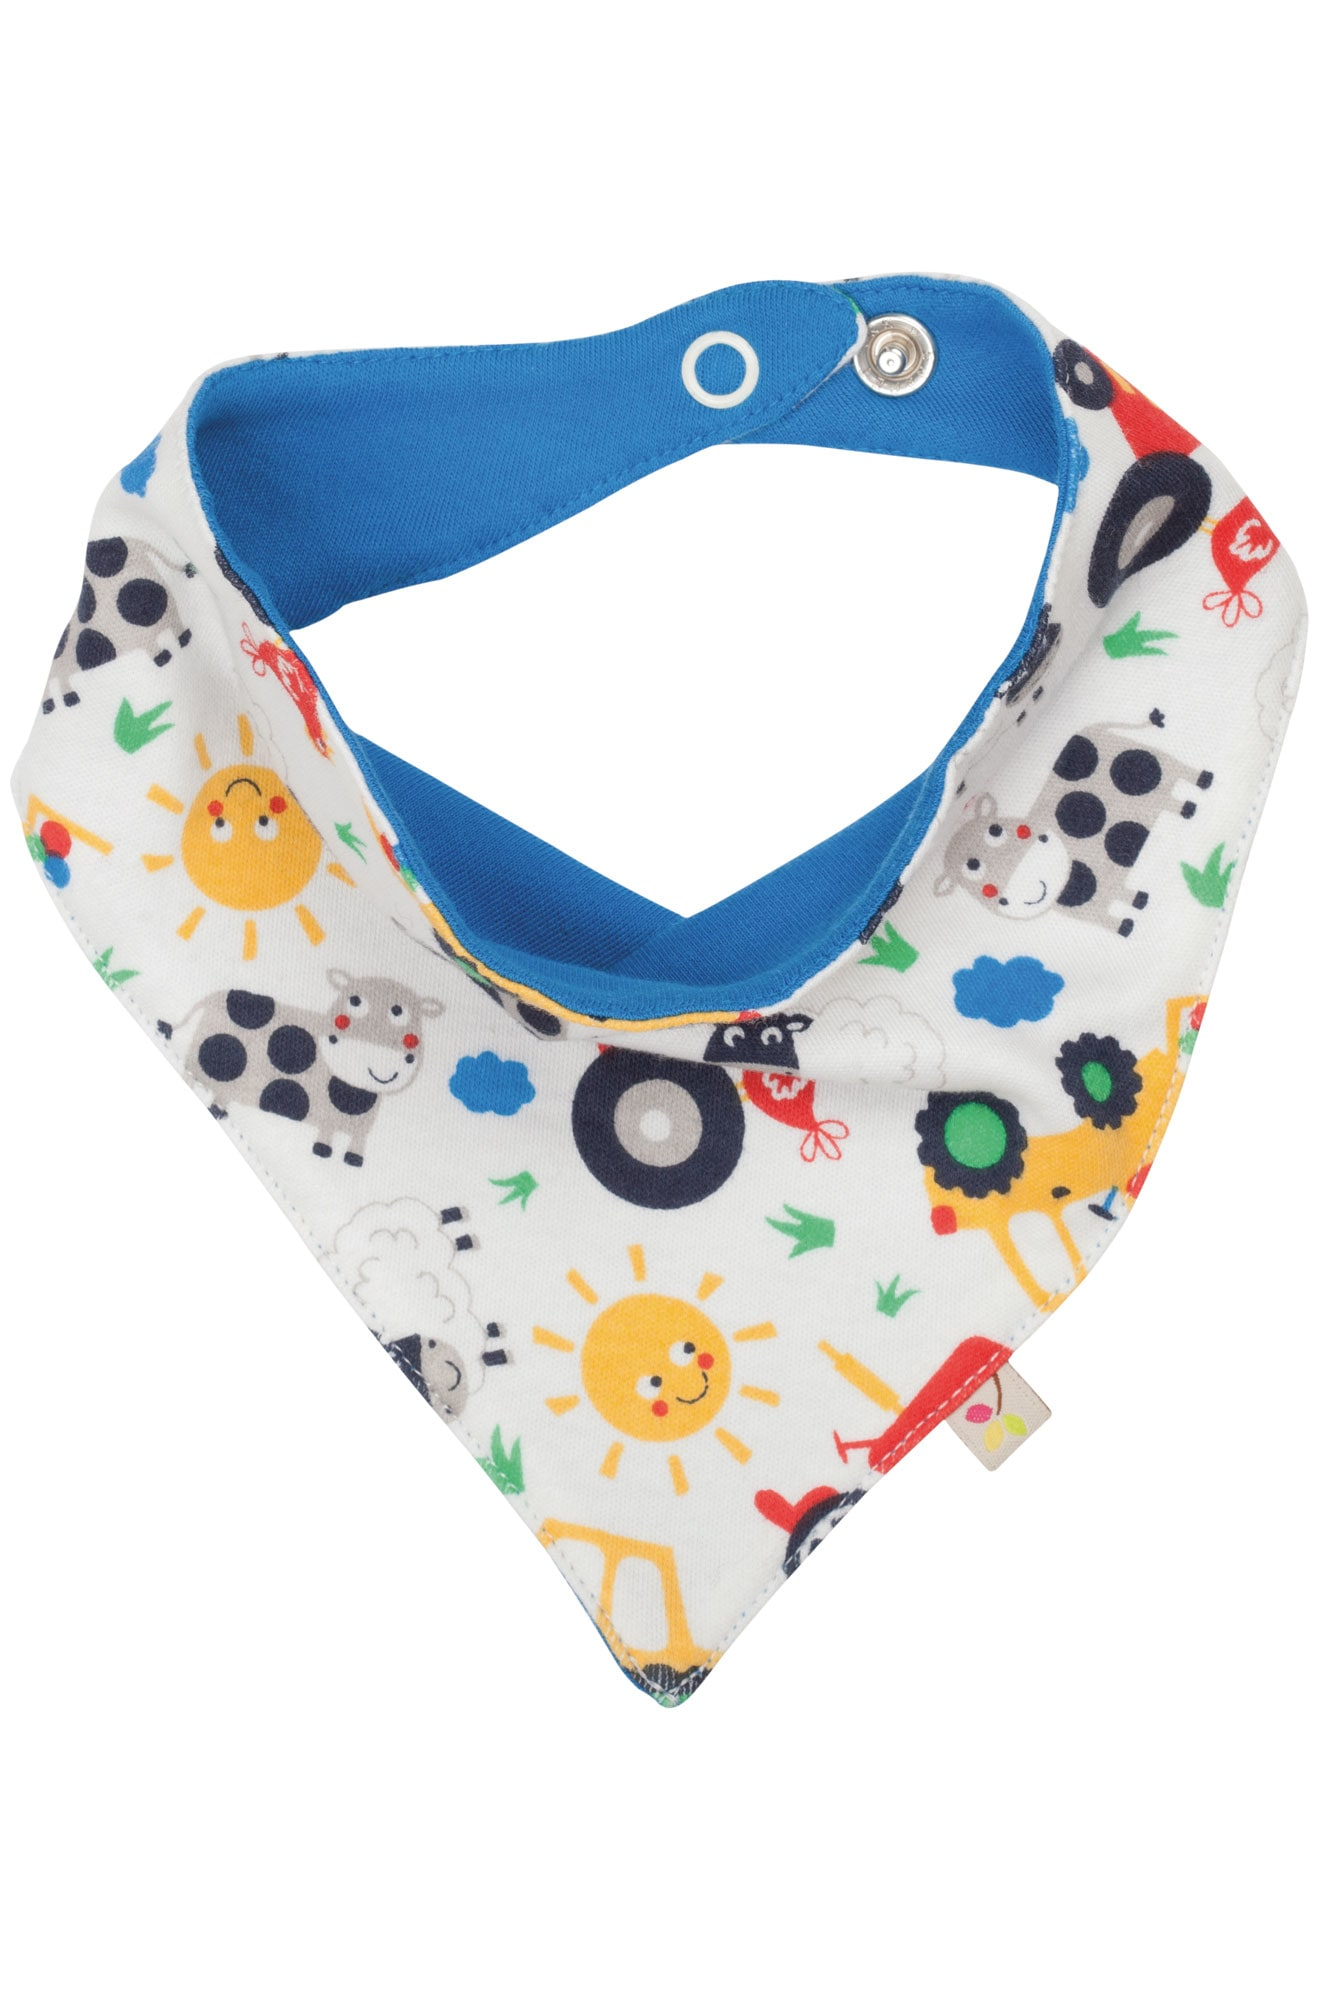 Stockists of Dribble Bib